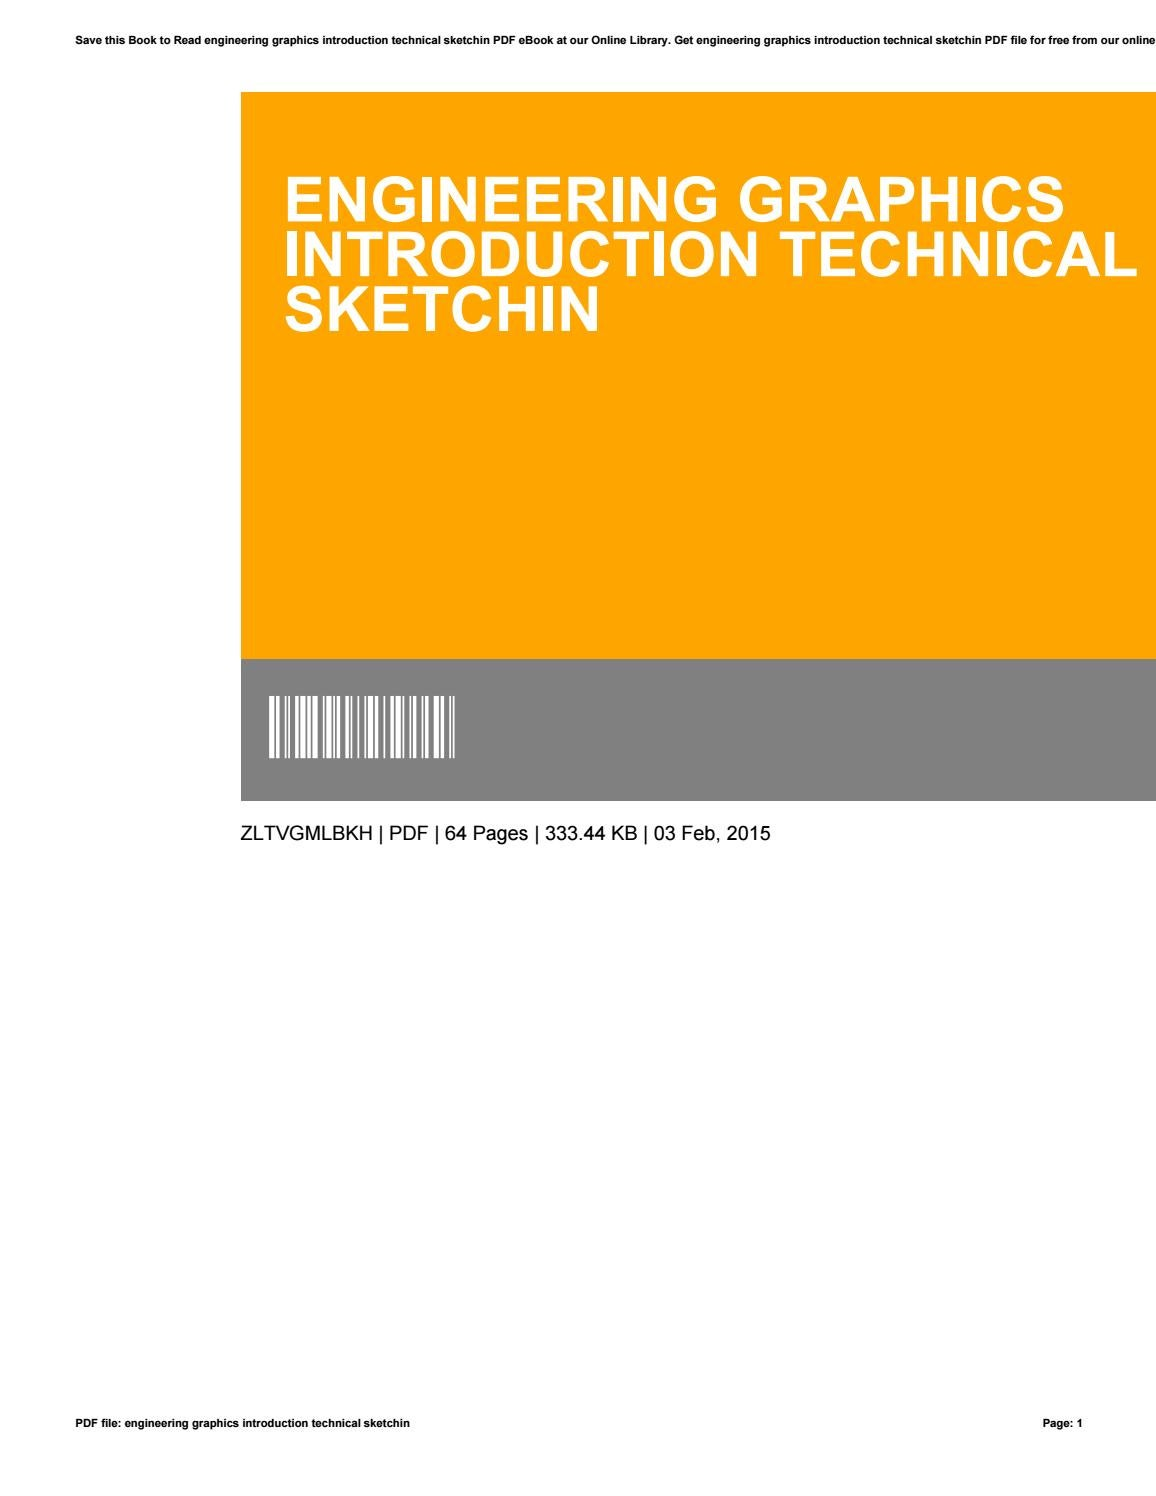 engineering graphics book by venugopal pdf